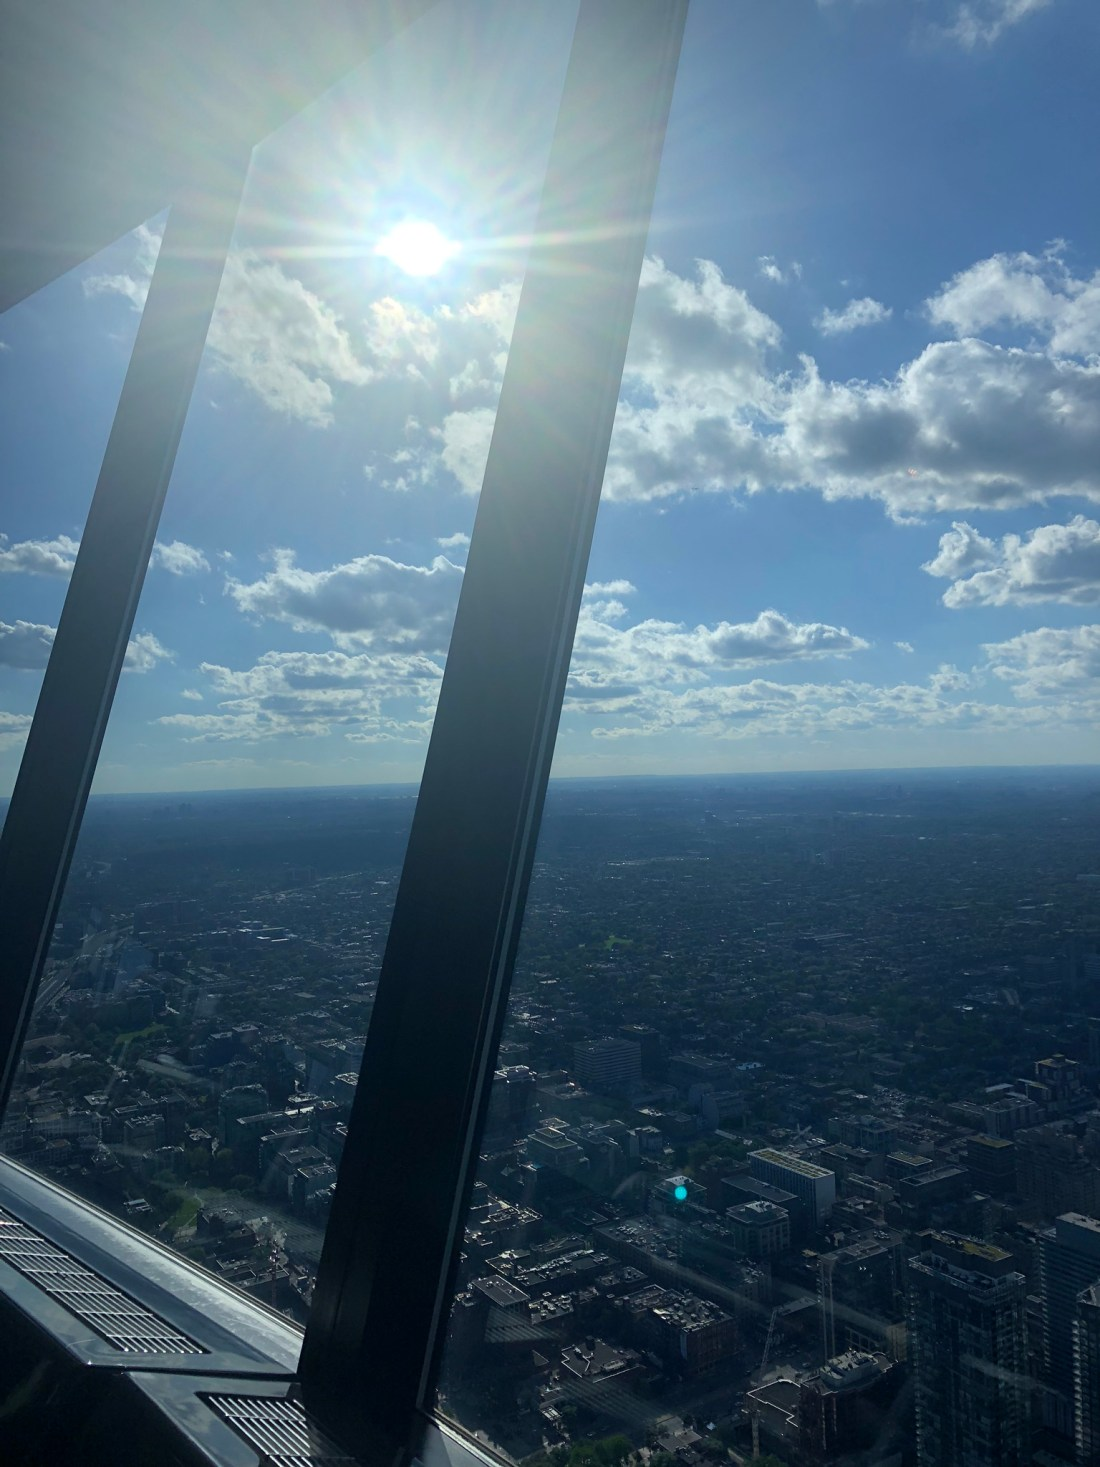 Summer in Toronto: Views from the CN Tower